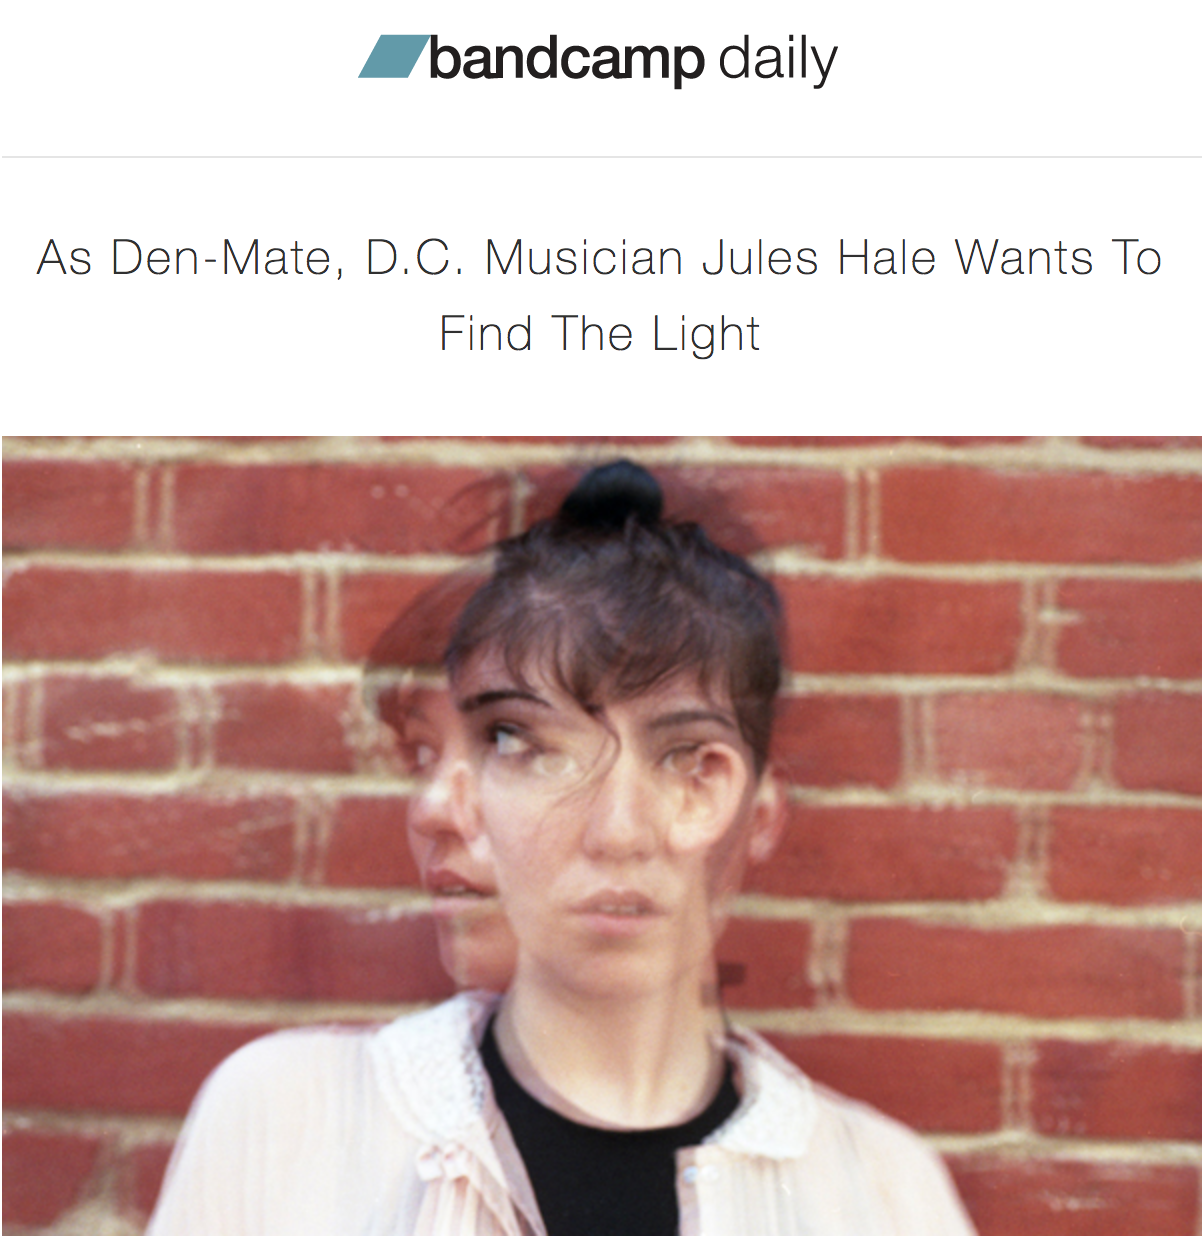 DEN-MATE INTERVIEW IN BANDCAMP DAILY — Babe City Records